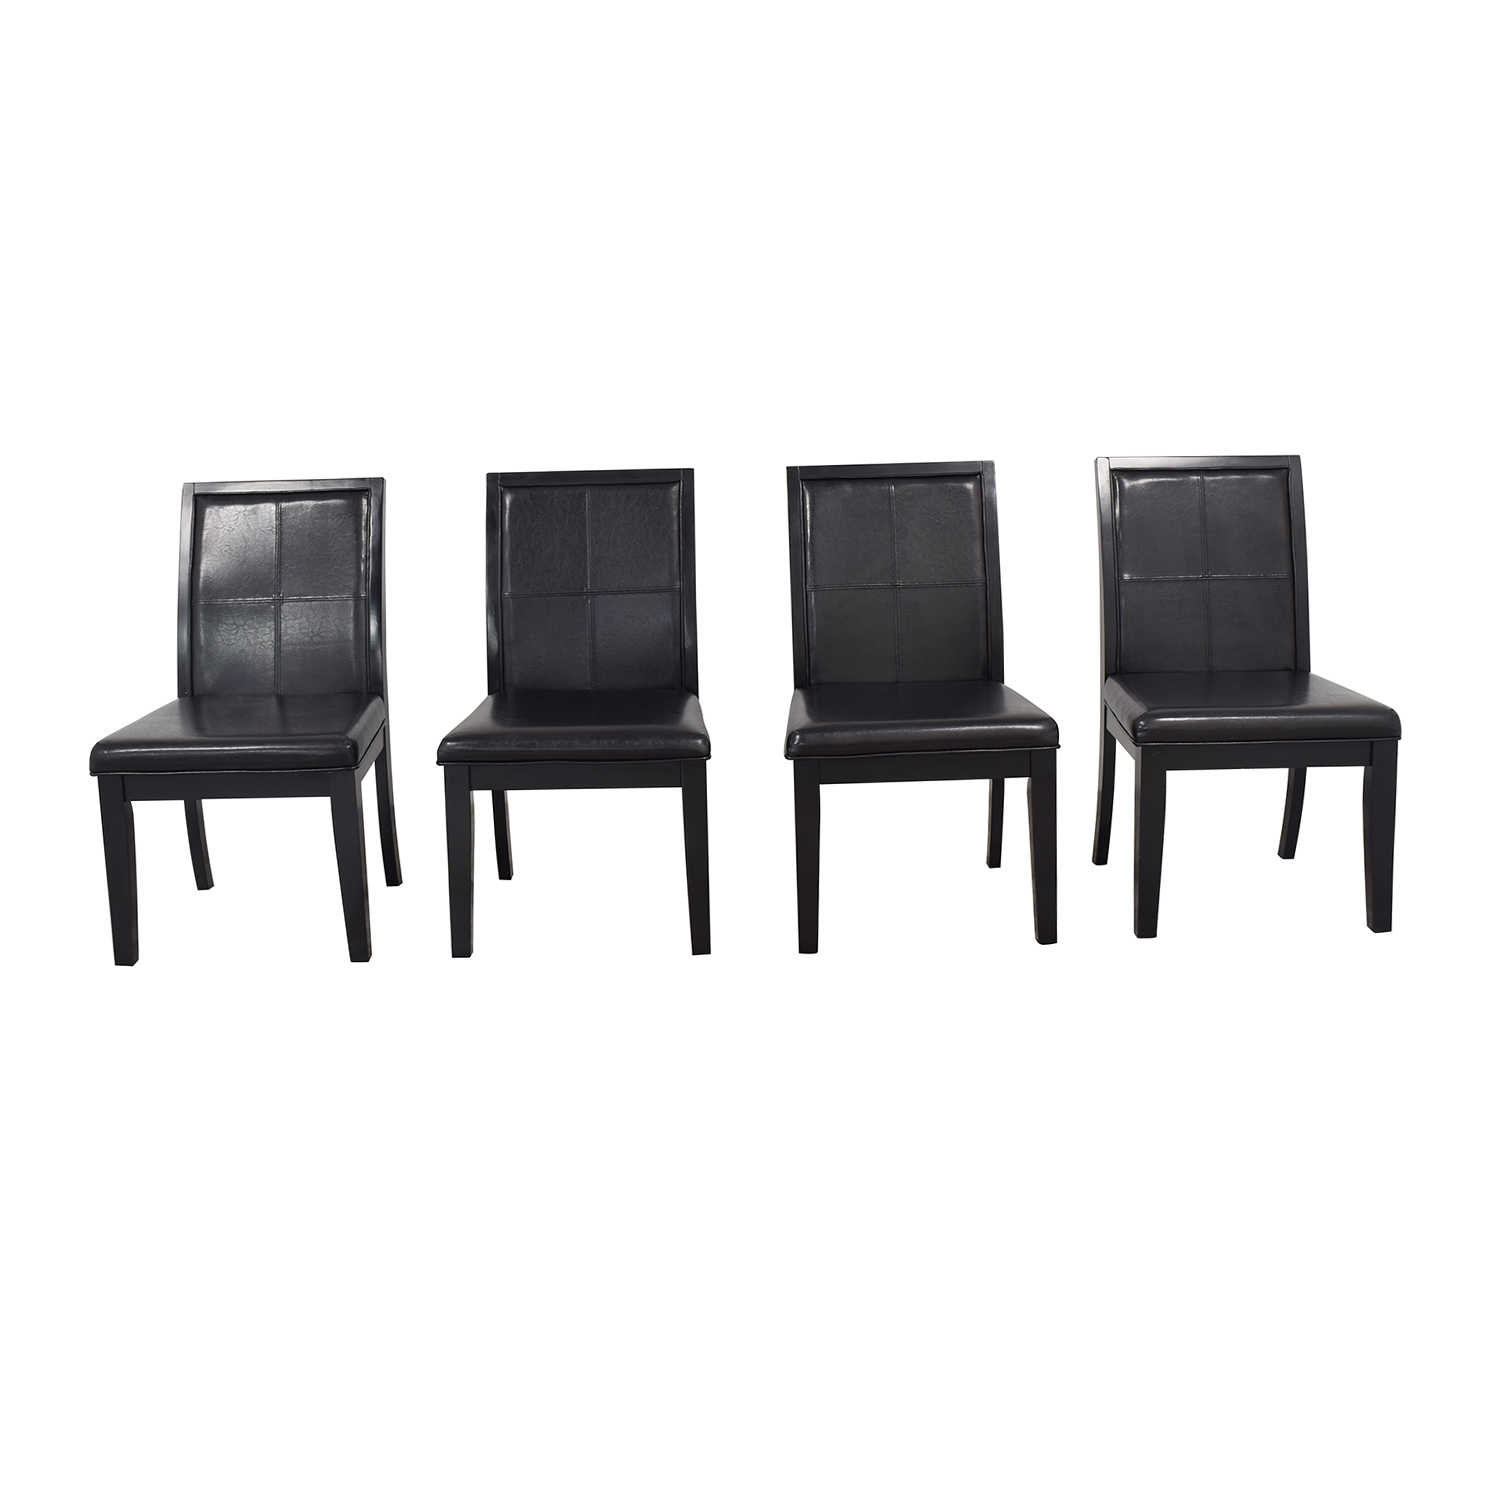 Calmart International Calmart International Dining Chairs nj